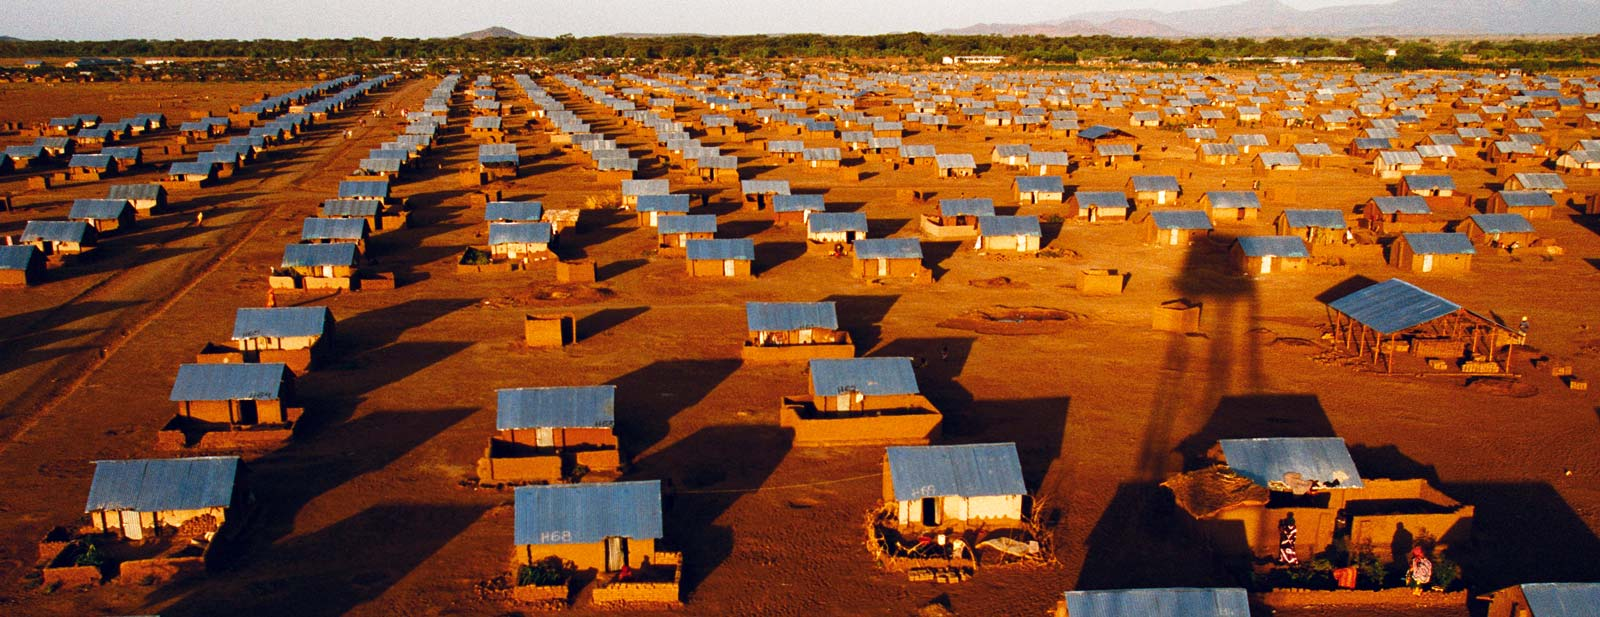 Sudanese border, Kakuma camp (Photo: Christophe Calais/Corbis)